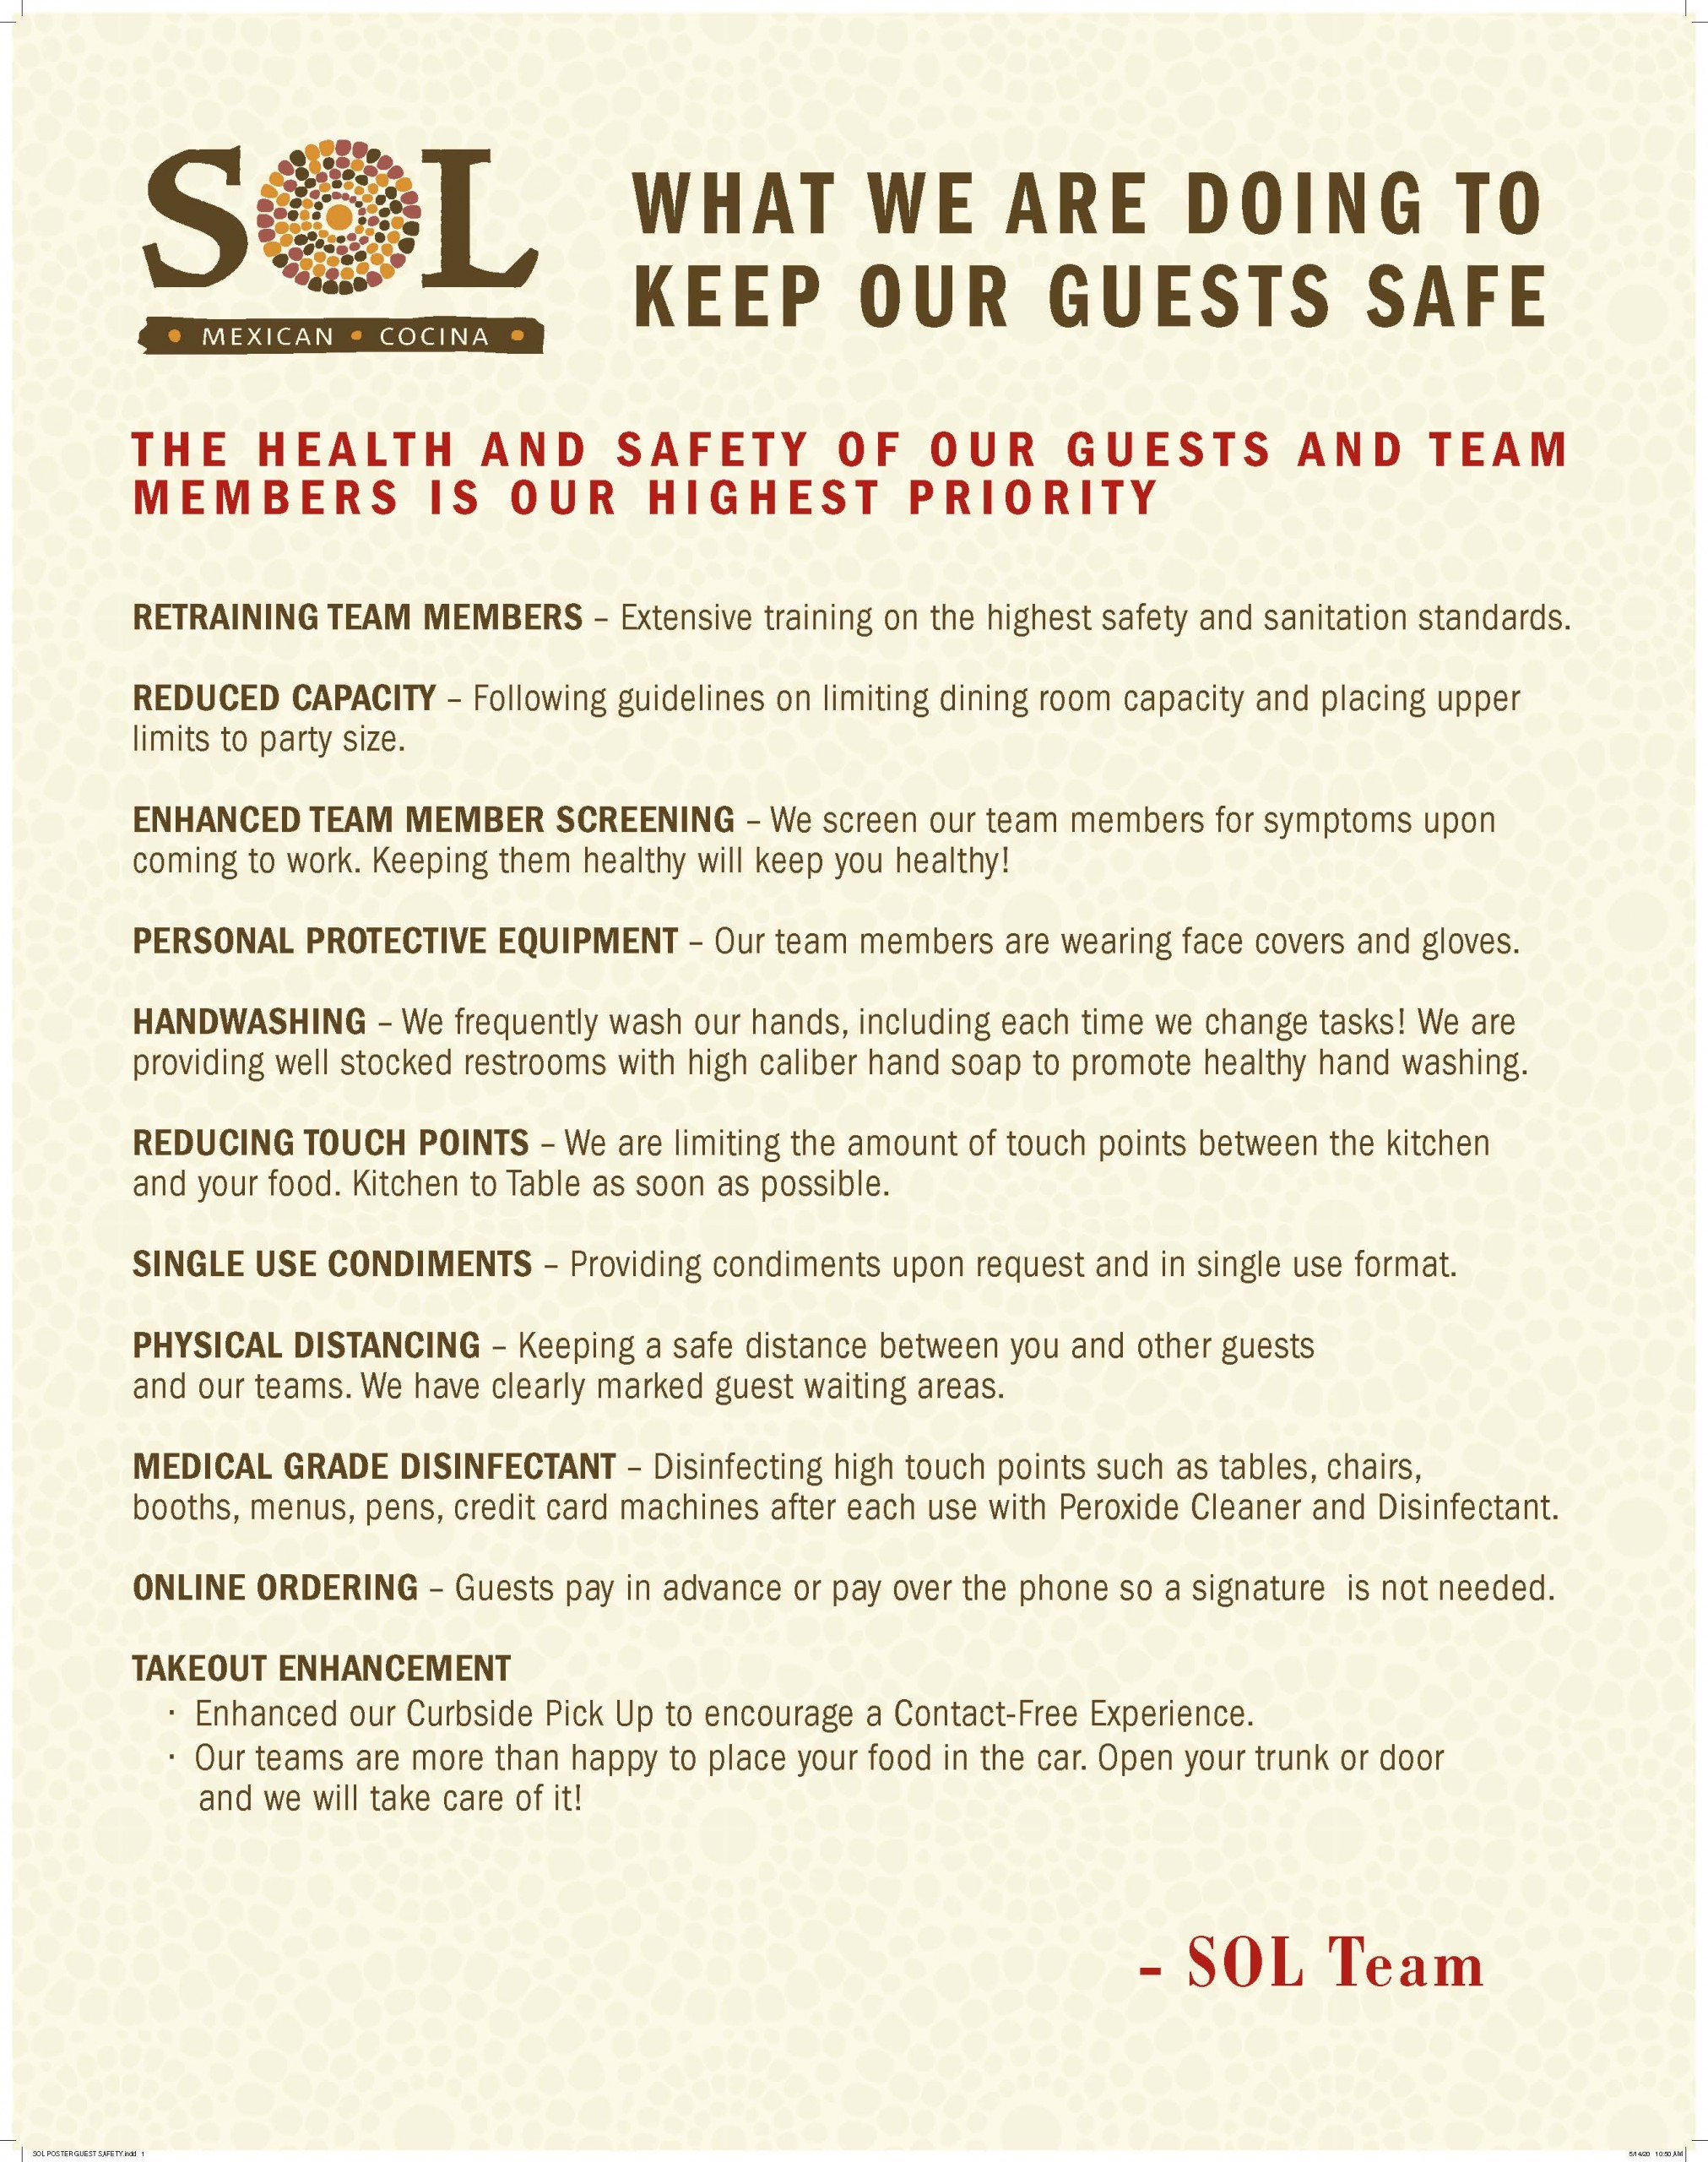 WHAT WE ARE DOING TO KEEP OUR GUESTS SAFE THE HEALTH AND SAFETY OF OUR GUESTS AND TEAM MEMBERS IS OUR HIGHEST PRIORITY RETRAINING TEAM MEMBERS - Extensive training on the highest safety and sanitation standards. REDUCED CAPACITY - following guidelines on limiting dining room capacity and placing upper limits to party size. ENHANCED TEAM MEMBER SCREENING - We screen our team members for symptoms upon coming to work. Keeping them healthy will keep you healthy! PERSONAL PROTECTIVE EQUIPMENT - Our team members are wearing face covers and gloves. HAND-WASHIN - We frequently wash our hands, including each time we change tasks! We are providing well stocked restrooms with high caliber hand soap to promote healthy hand washing. REDUCING TOUCH POINTS - We are limiting the amount of touch points between the kitchen and your food. Kitchen to Table as soon as possible. SINGLE USE CONDIMENTS - Providing condiments upon request and in single use format. PHYSICAL DISTANCING - Keeping a safe distance between you and other guests and our teams. We have clearly marked guest waiting areas. MEDICAL GRADE DISINFECTANT - Disinfecting high touch points such as tables, chairs, booths, menus, pens, credit card machines after each use with Peroxide Cleaner and Disinfectant. ONLINE ORDERING - Guests pay in advance or pay over the phone so a signature is not needed. TAKEOUT ENHANCEMENT - Enhanced our Curbside Pick Up to encourage a Contact Free Experience. Our teams are more than happy to place your food in the car. Open your trunk or door and we will take care of it! SOL Team